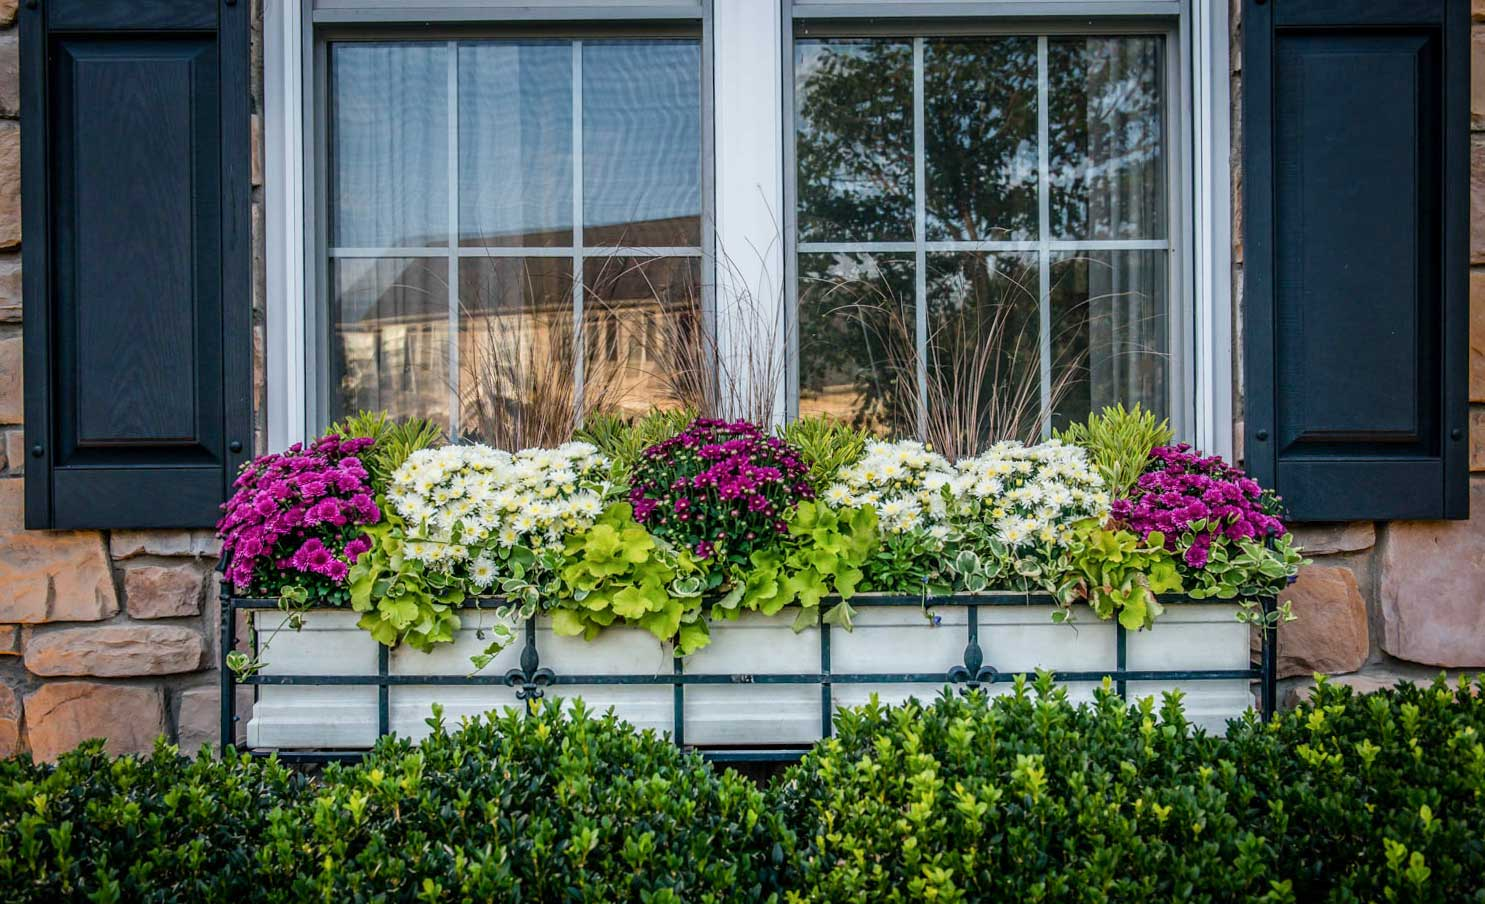 Philadelphia Main Line Seasonal Planters and Enhancements